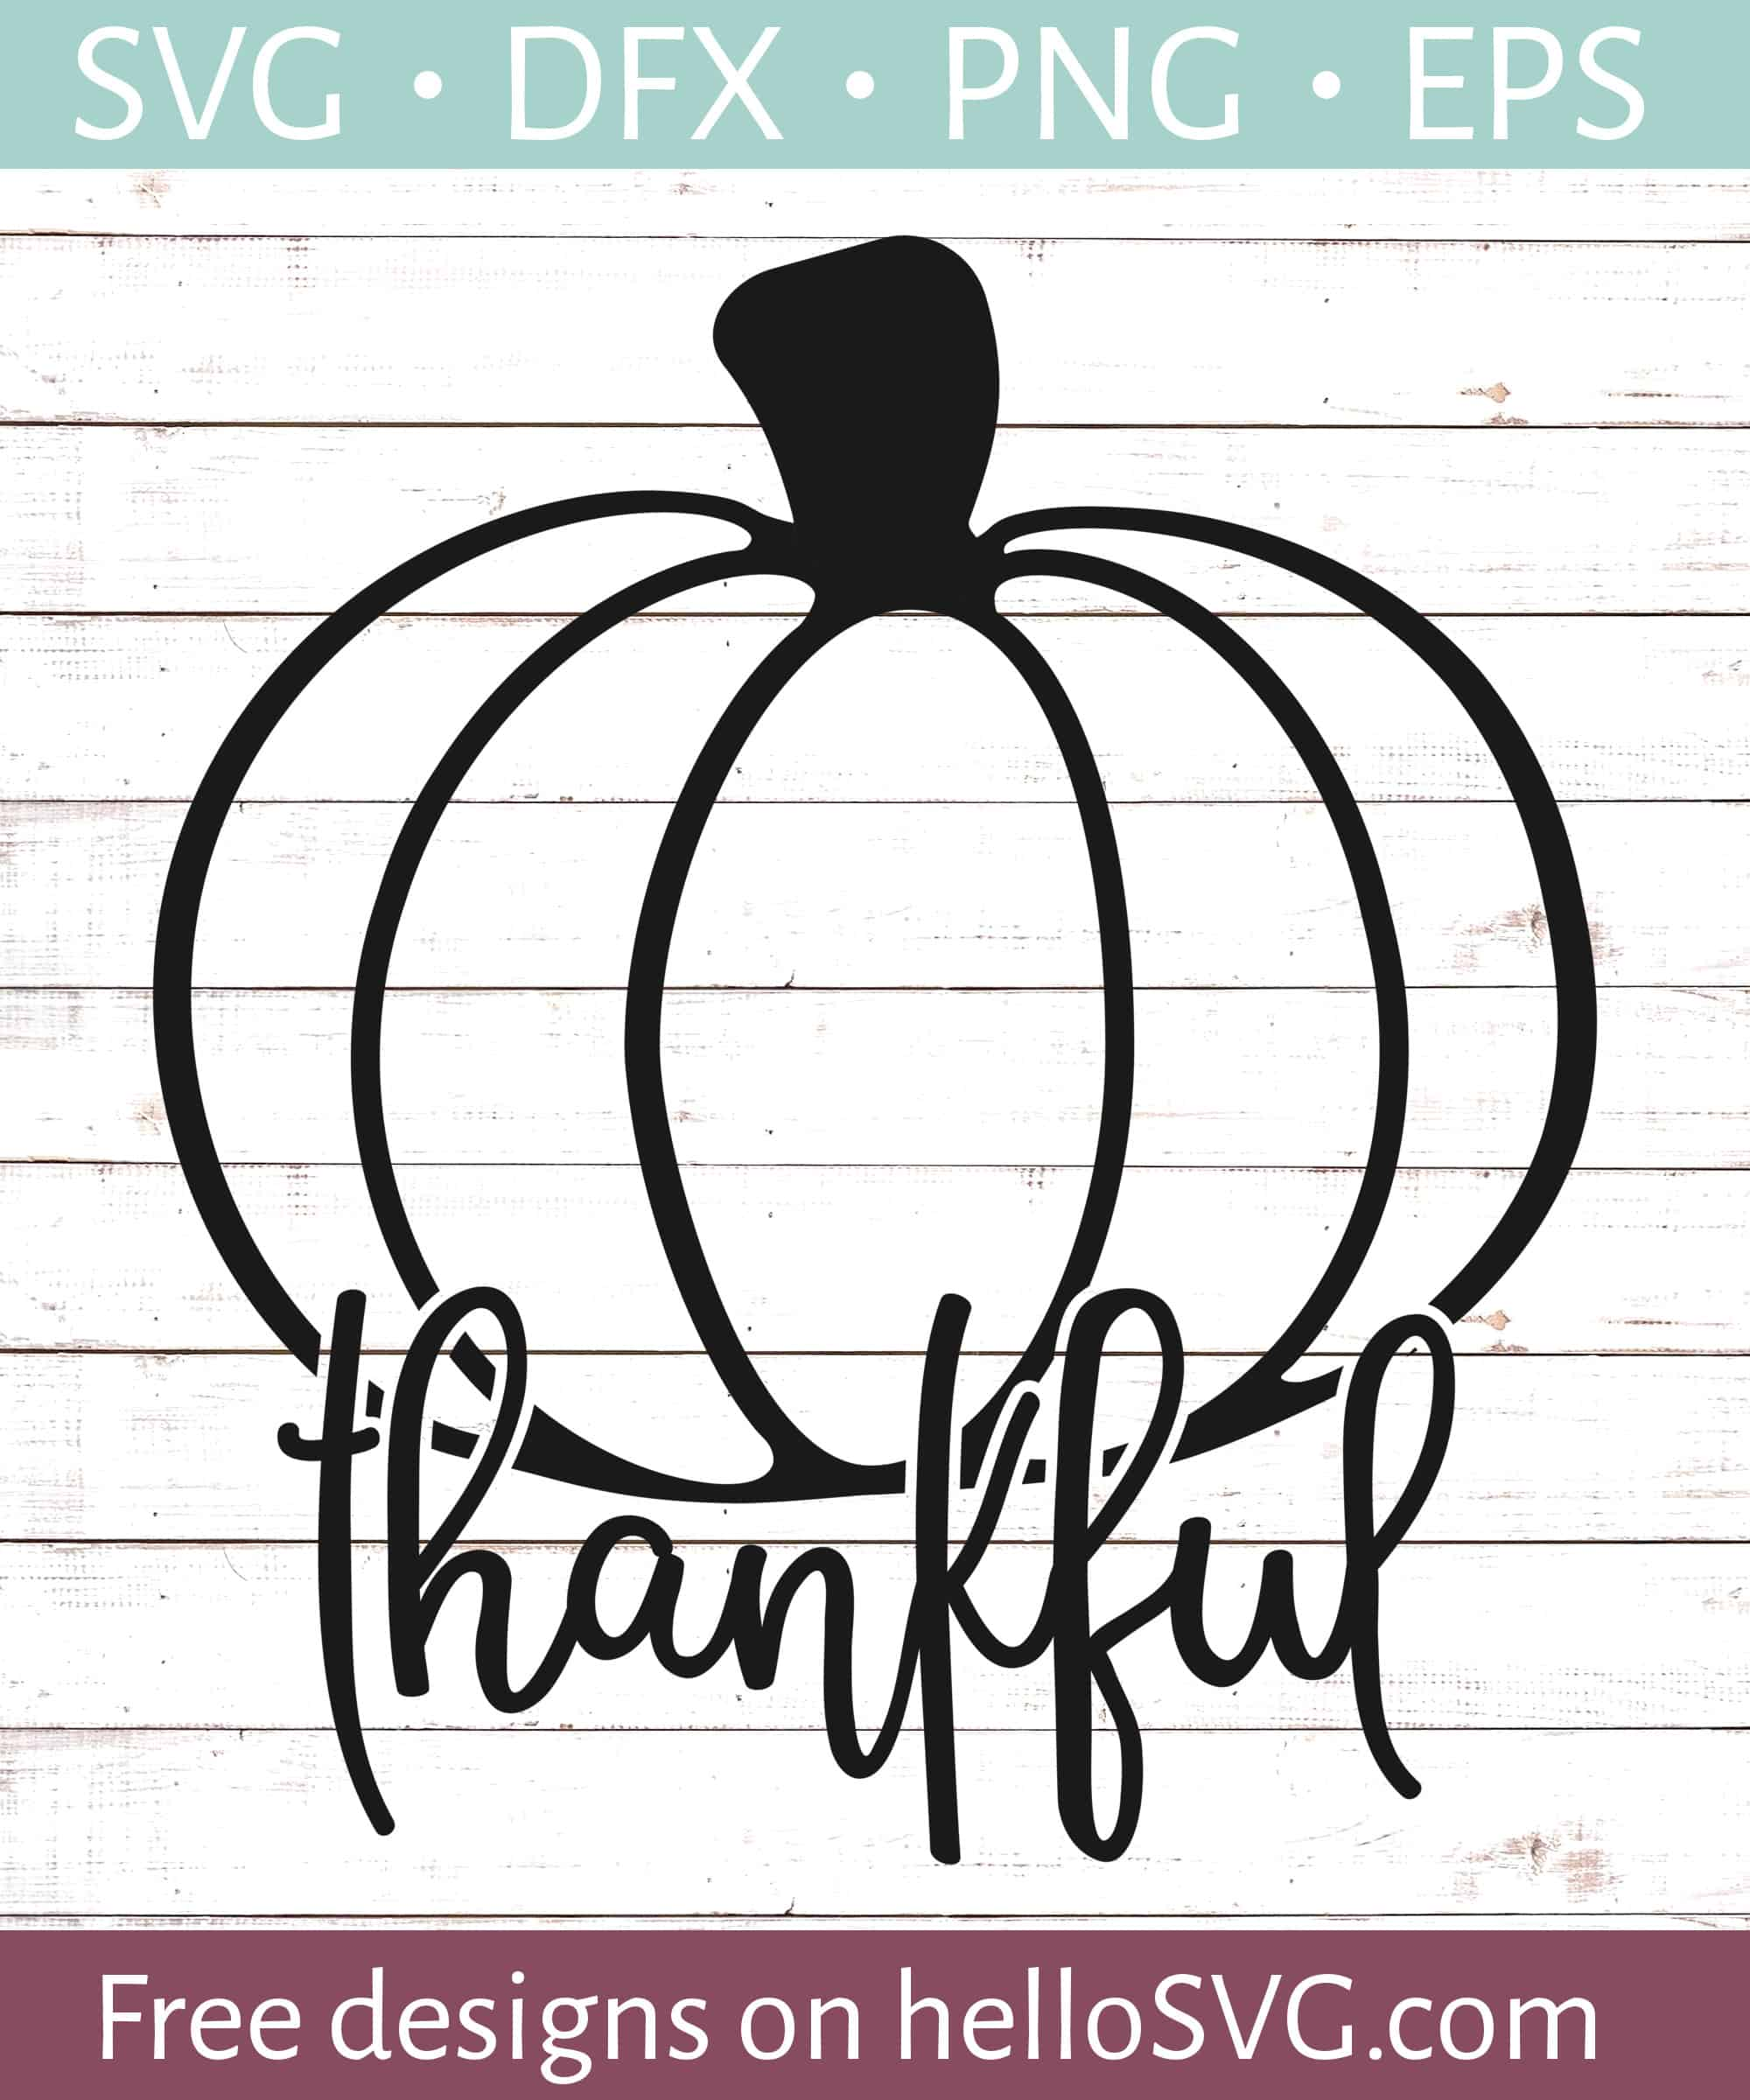 Thankful Svg : thankful, Thankful, Pumpkin, Files, HelloSVG.com